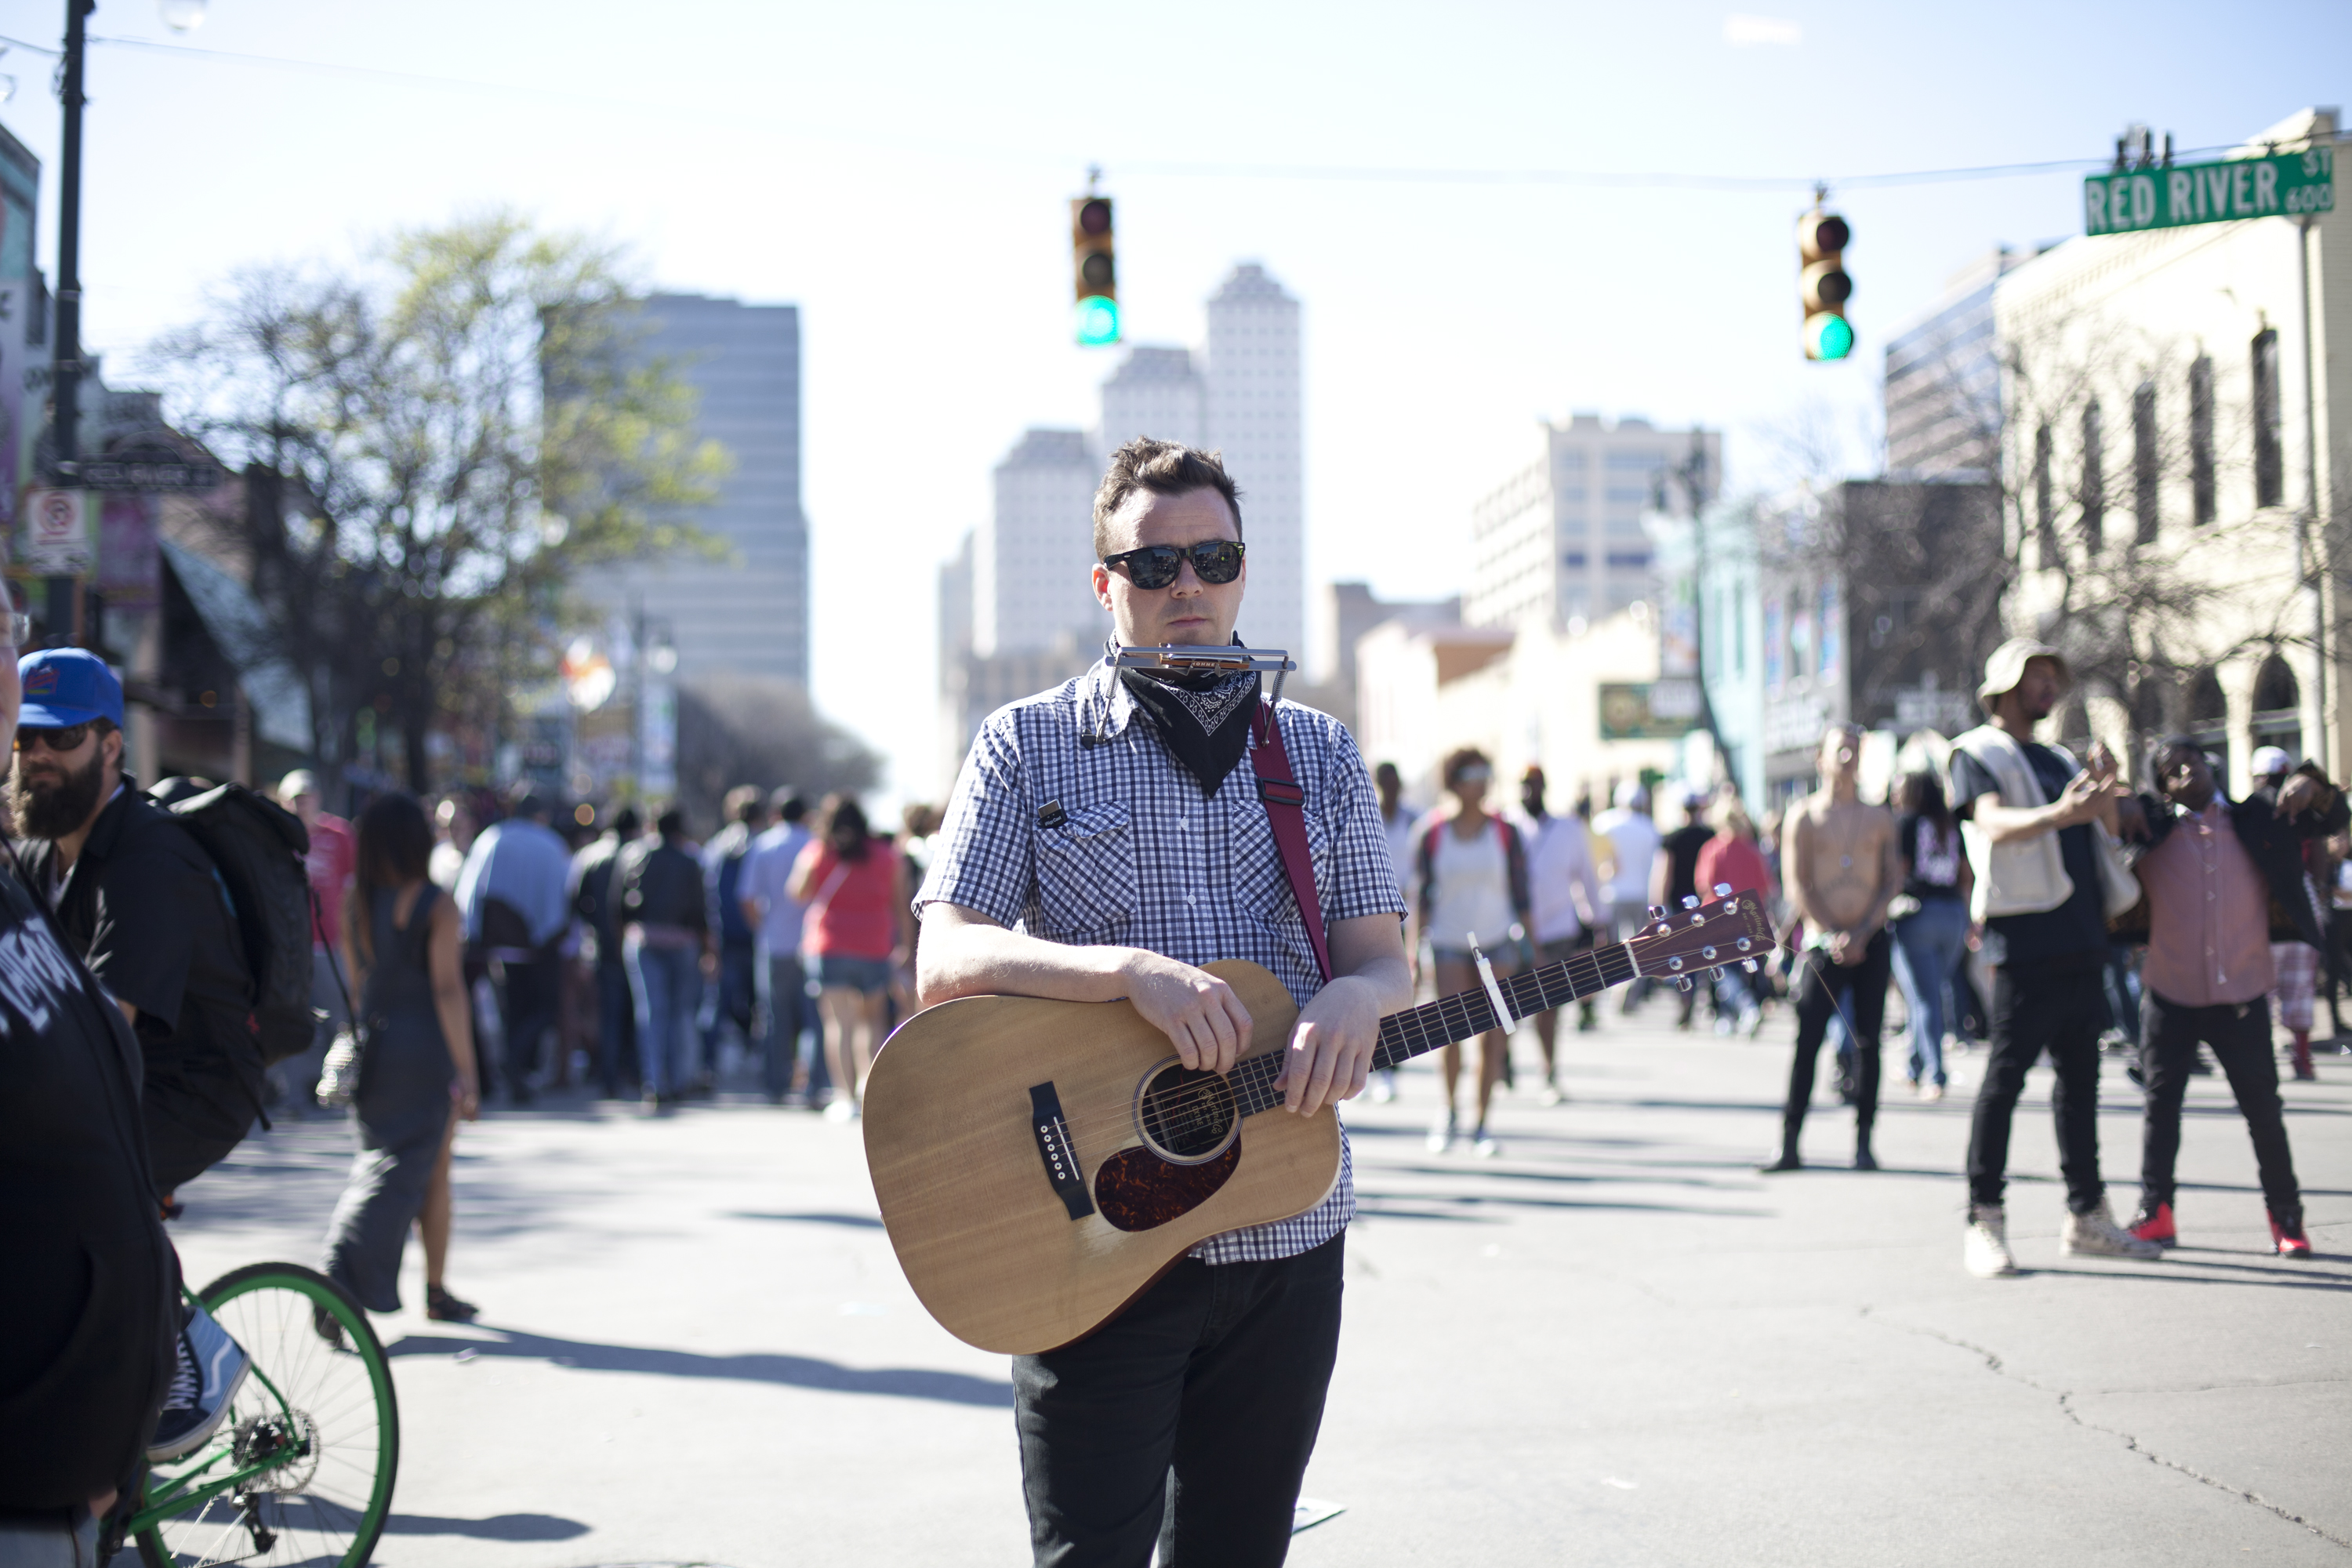 At SXSW, you can find music everywhere, even at stoplights.